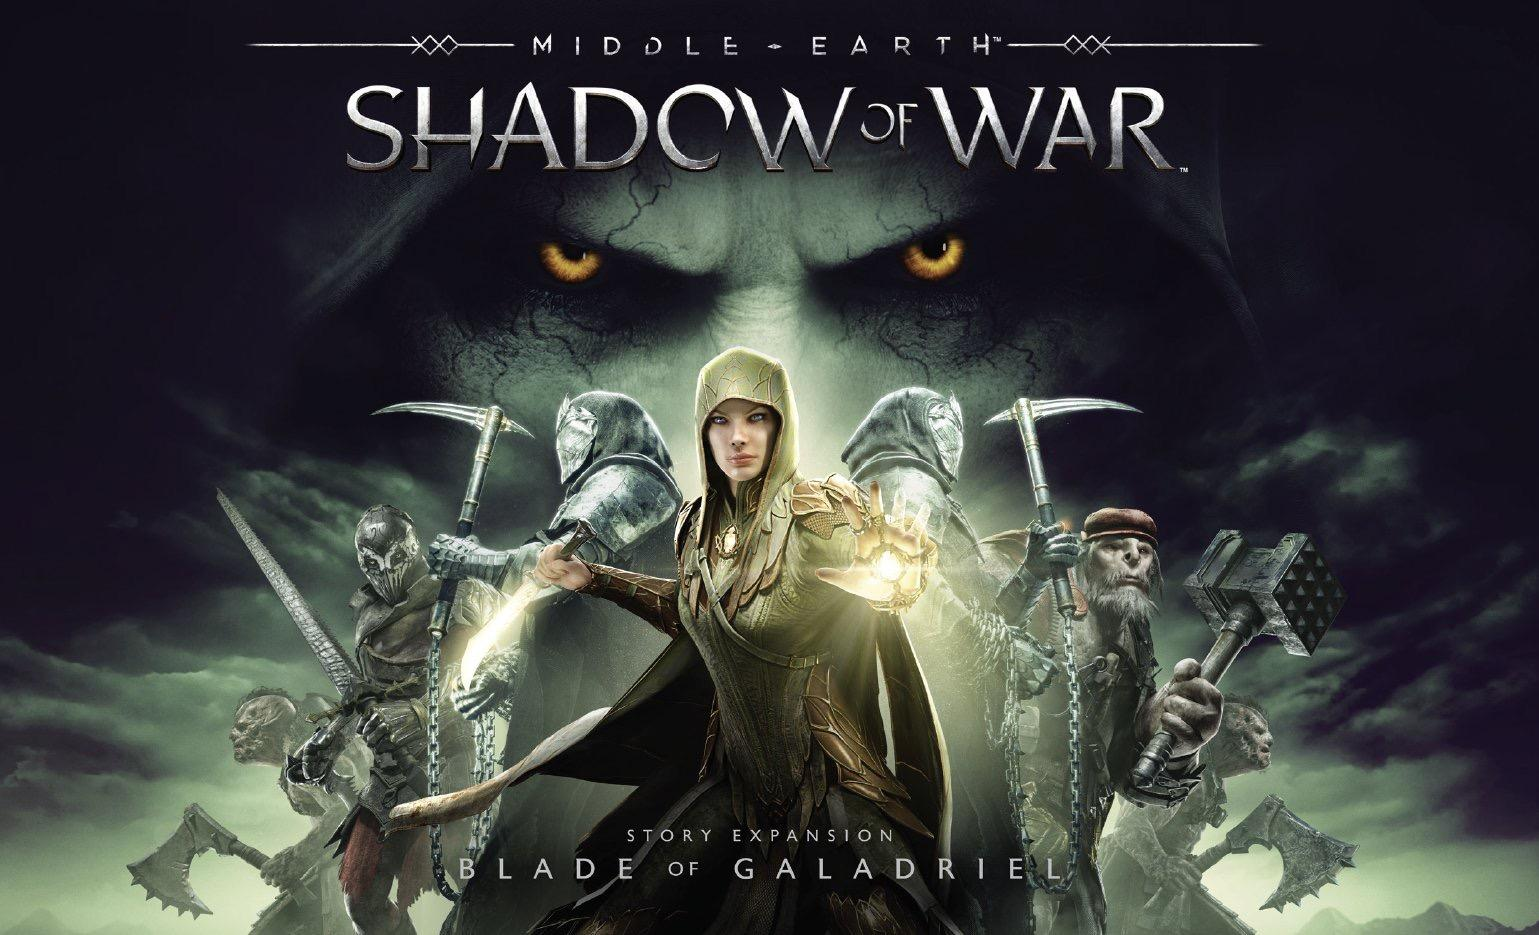 Middle-earth: Shadow of War - Blade of Galadriel Available Now